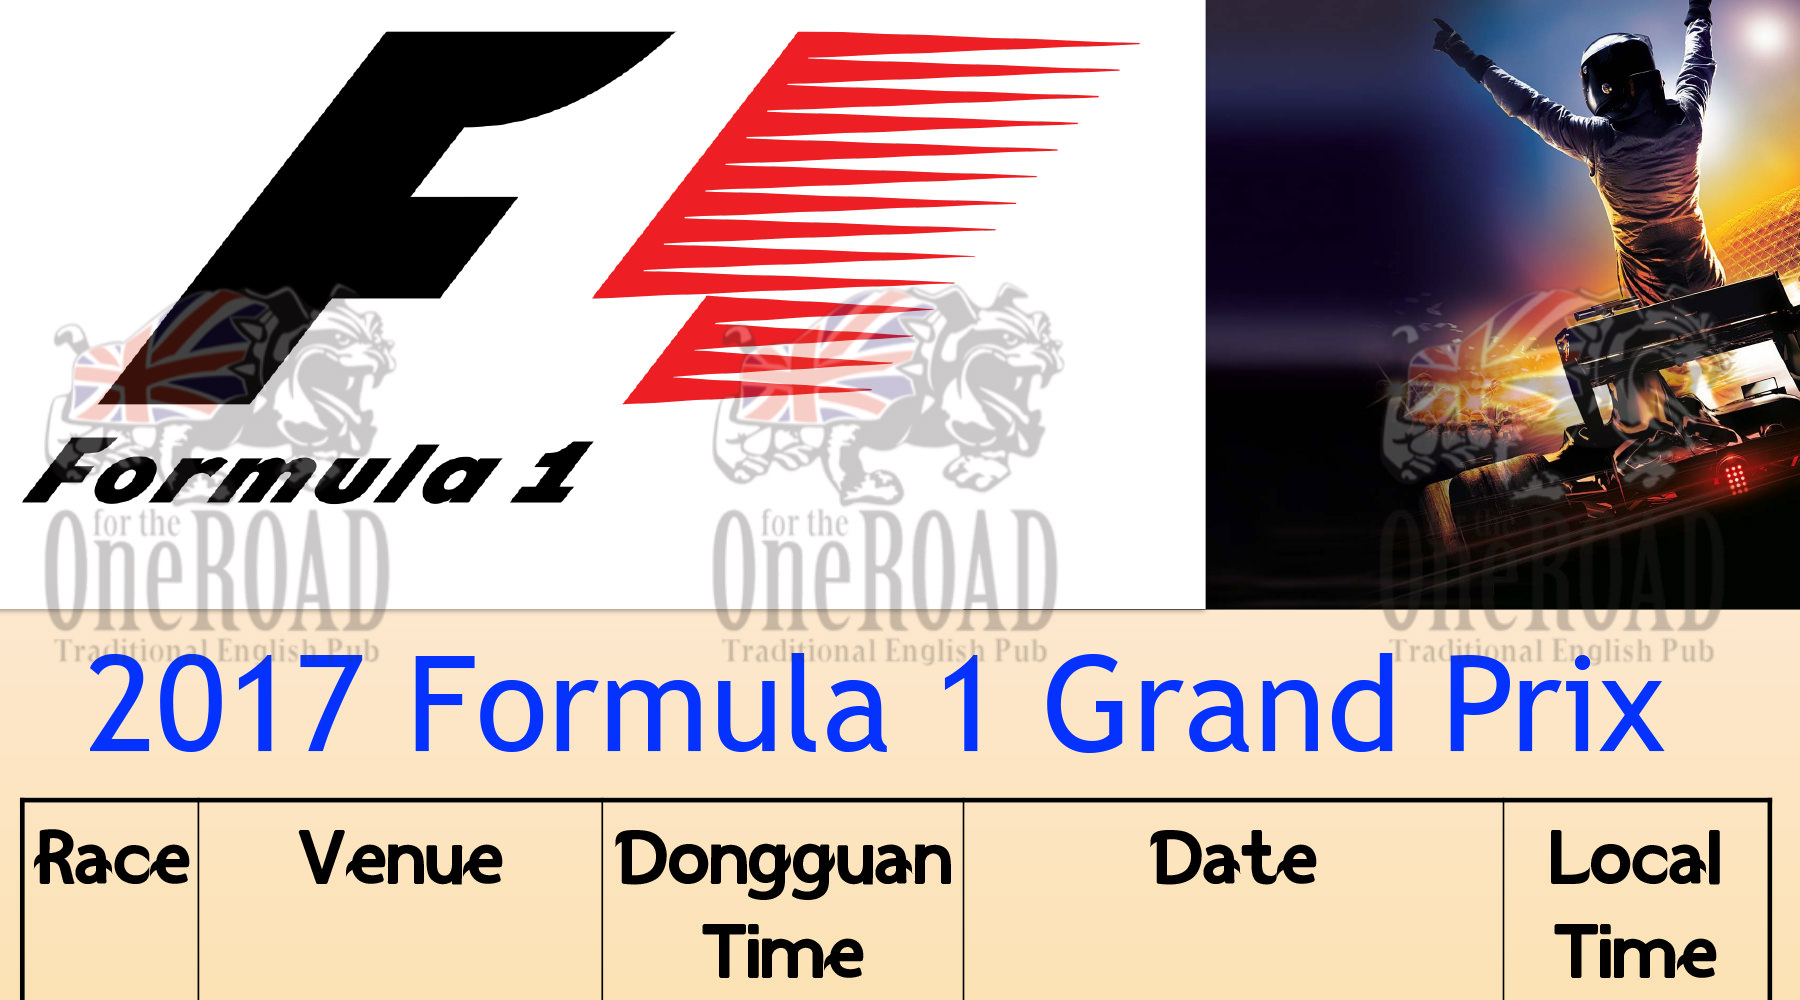 Watch all of the F1 Grand Prix races this year!